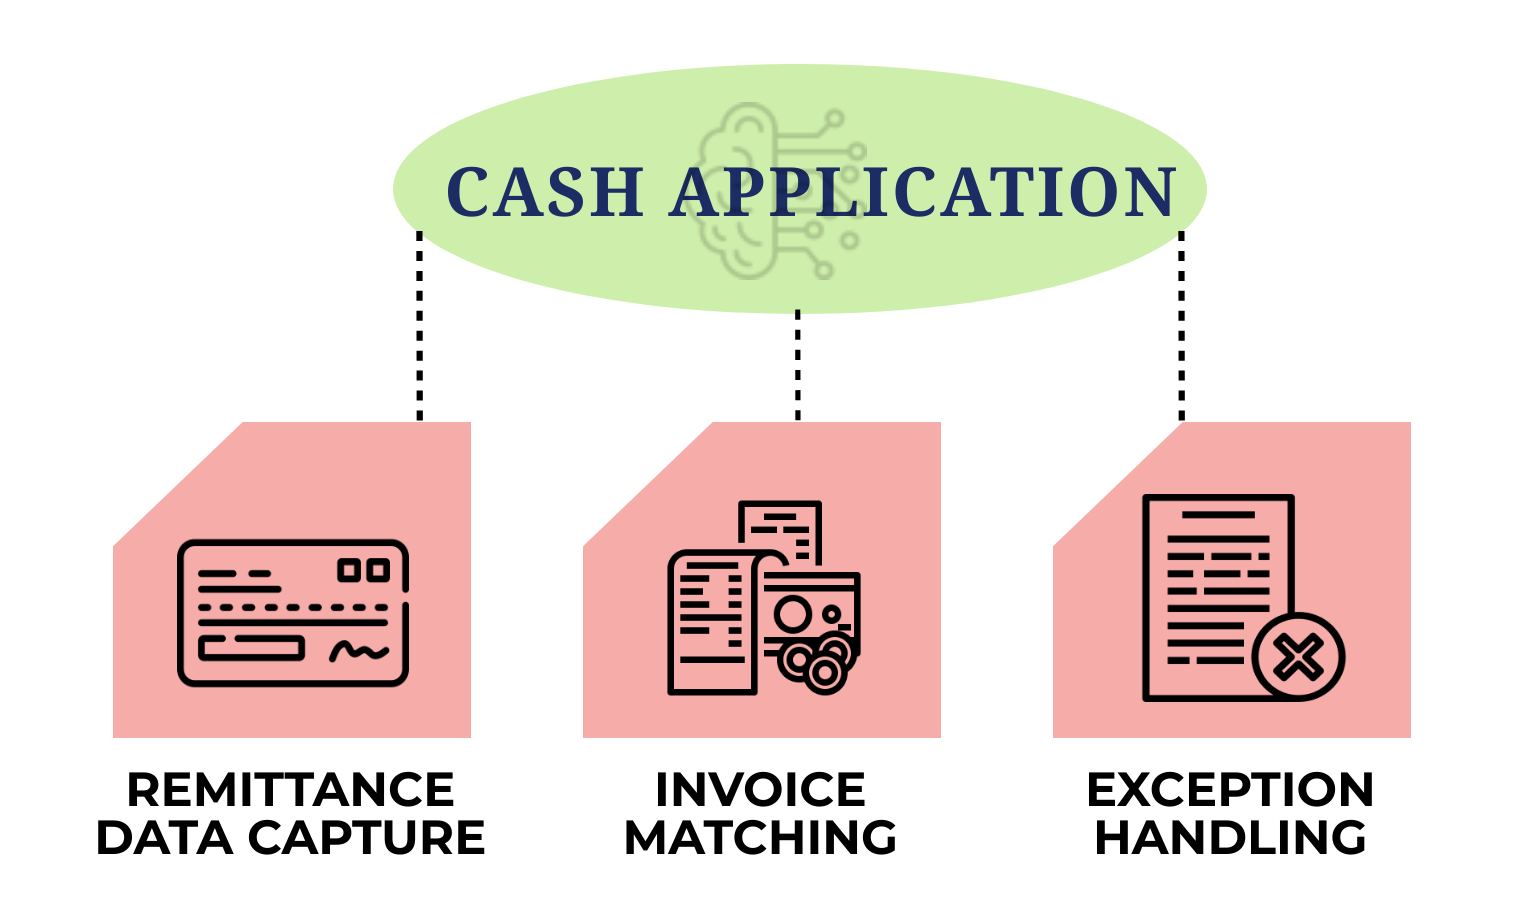 3 aspects of cash application